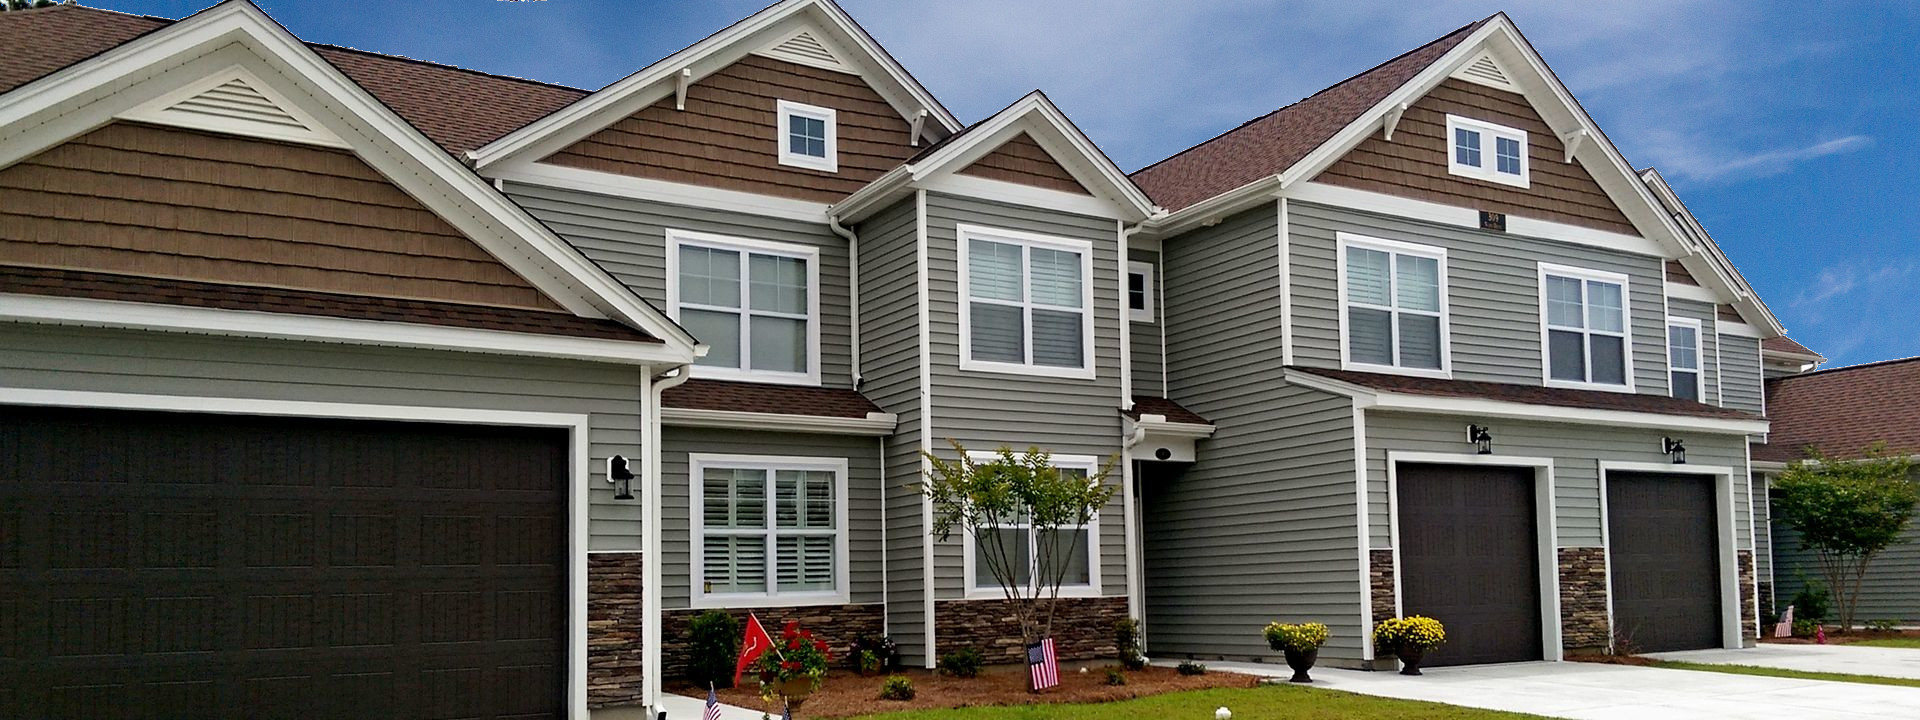 Myrtle Beach Condos & Townhomes With a Private Garage